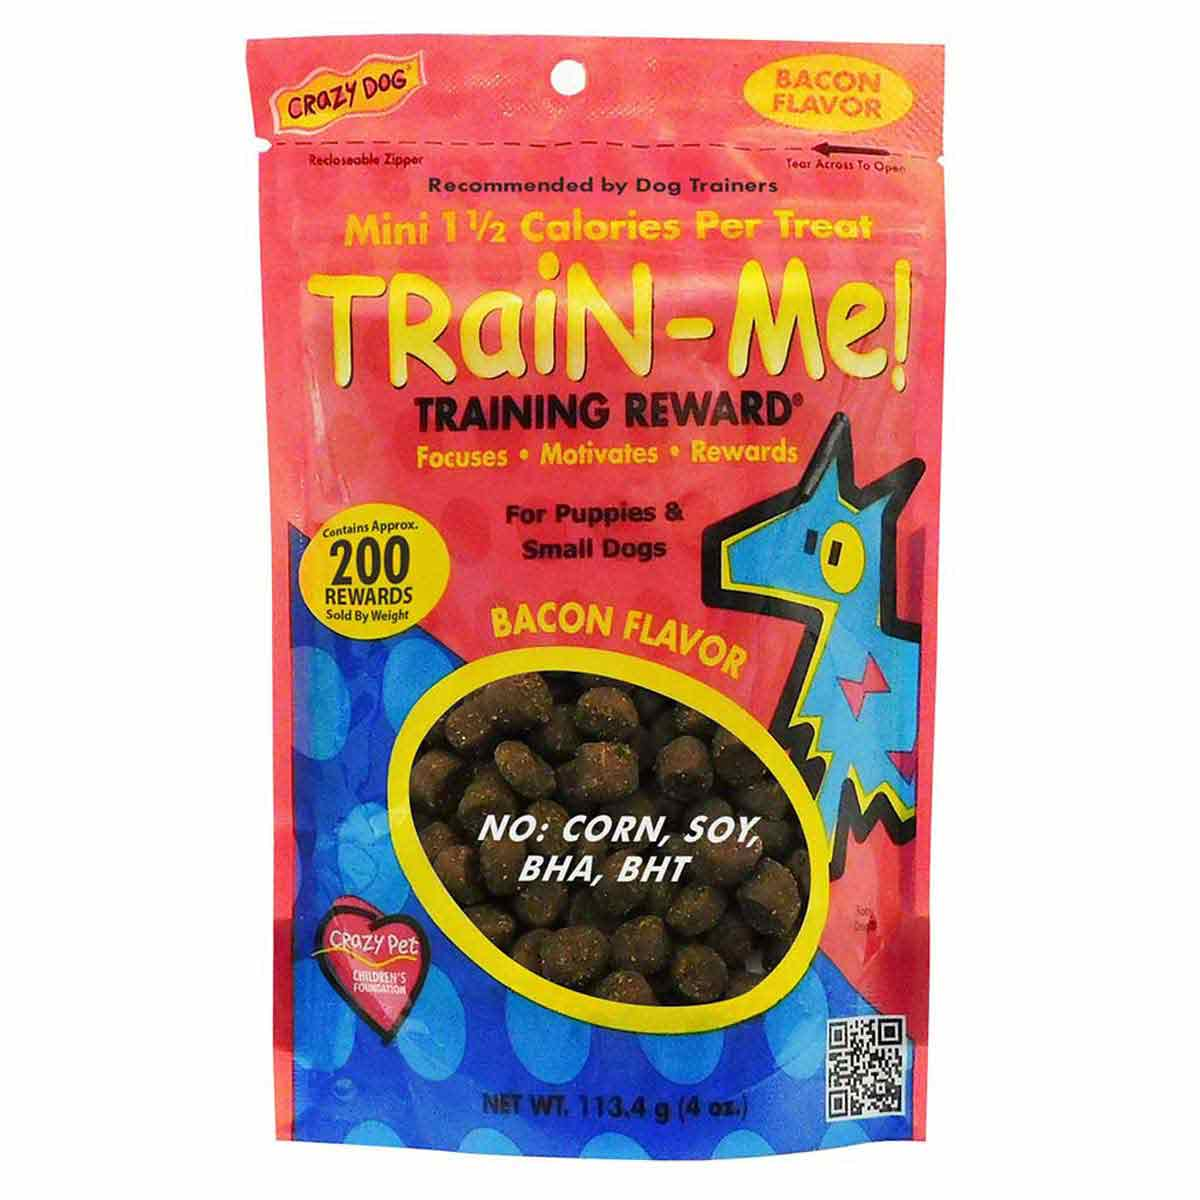 Crazy Dog Train-Me! Bacon Training Treats 4 oz Mini